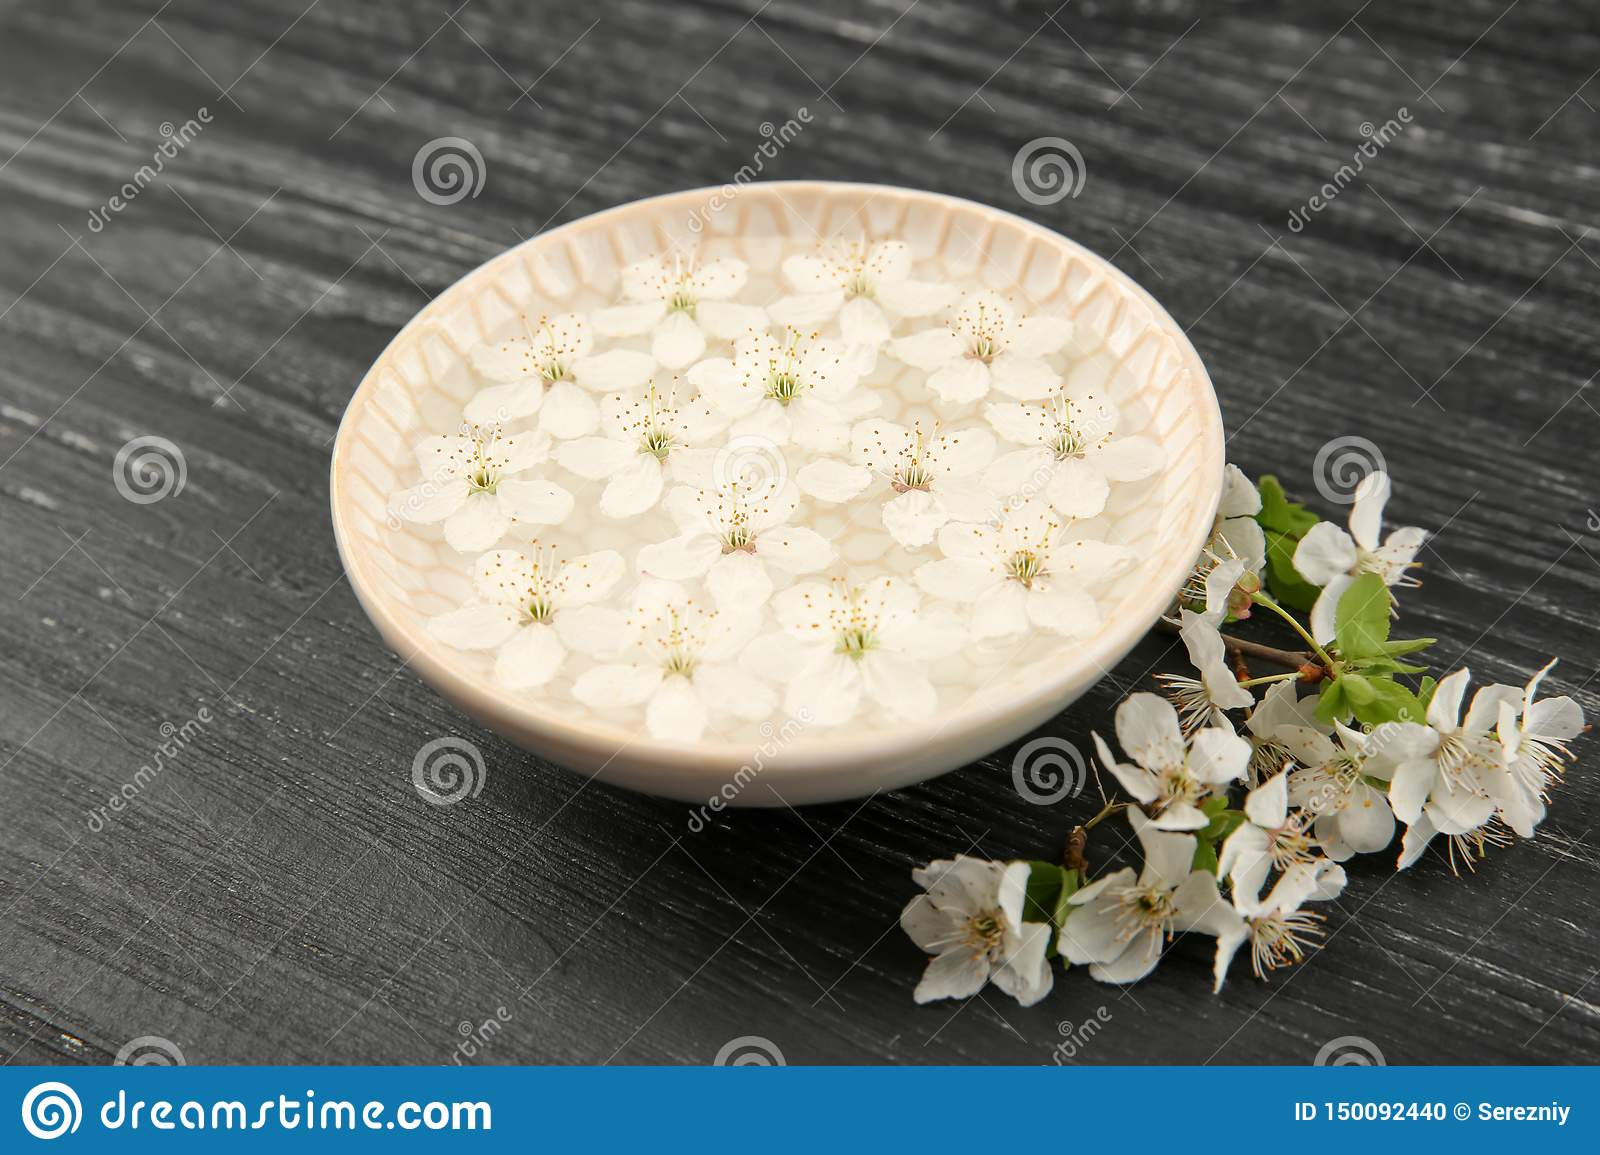 Plate with water and blooming flowers on dark wooden background